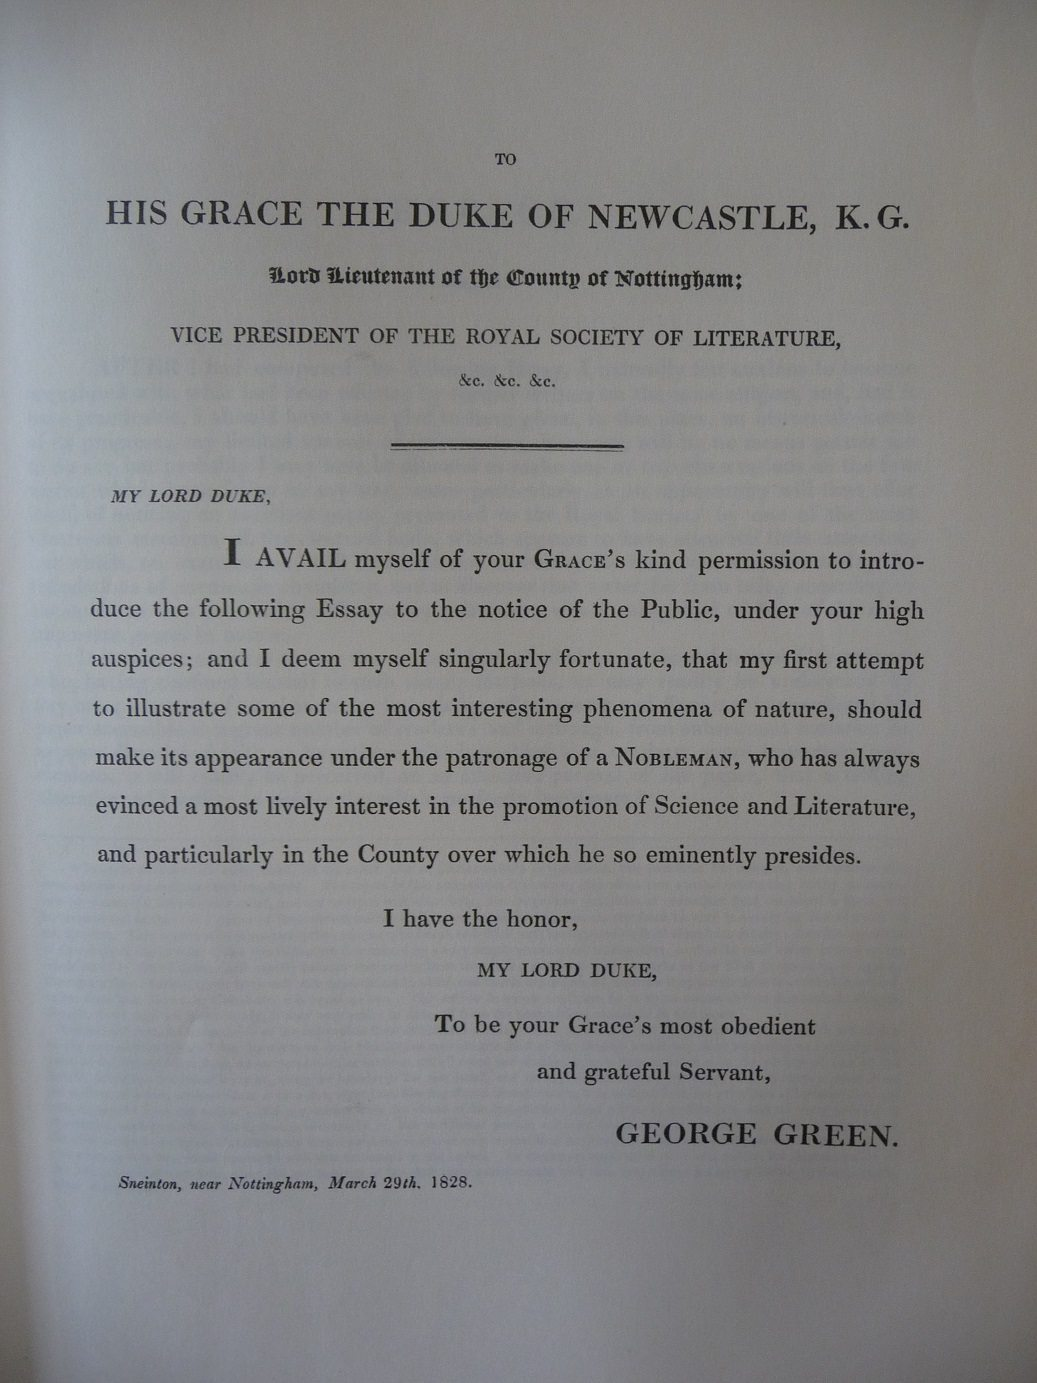 """George Green's dedication to His Grace The Duke or Newcastle. It reads: My Lord Duke, I avail myself of your Grace's kind permission to introduce the following Essay to the notice of the Public, under your high auspices; and I deem myself singularly fortunate, that my first attempt to illustrate some of the most interesting phenomena of nature, should make its appearance under the patronage of a Nobelman, who has always envinced a most lively interest in the promotion of Science and Literature.."""""""